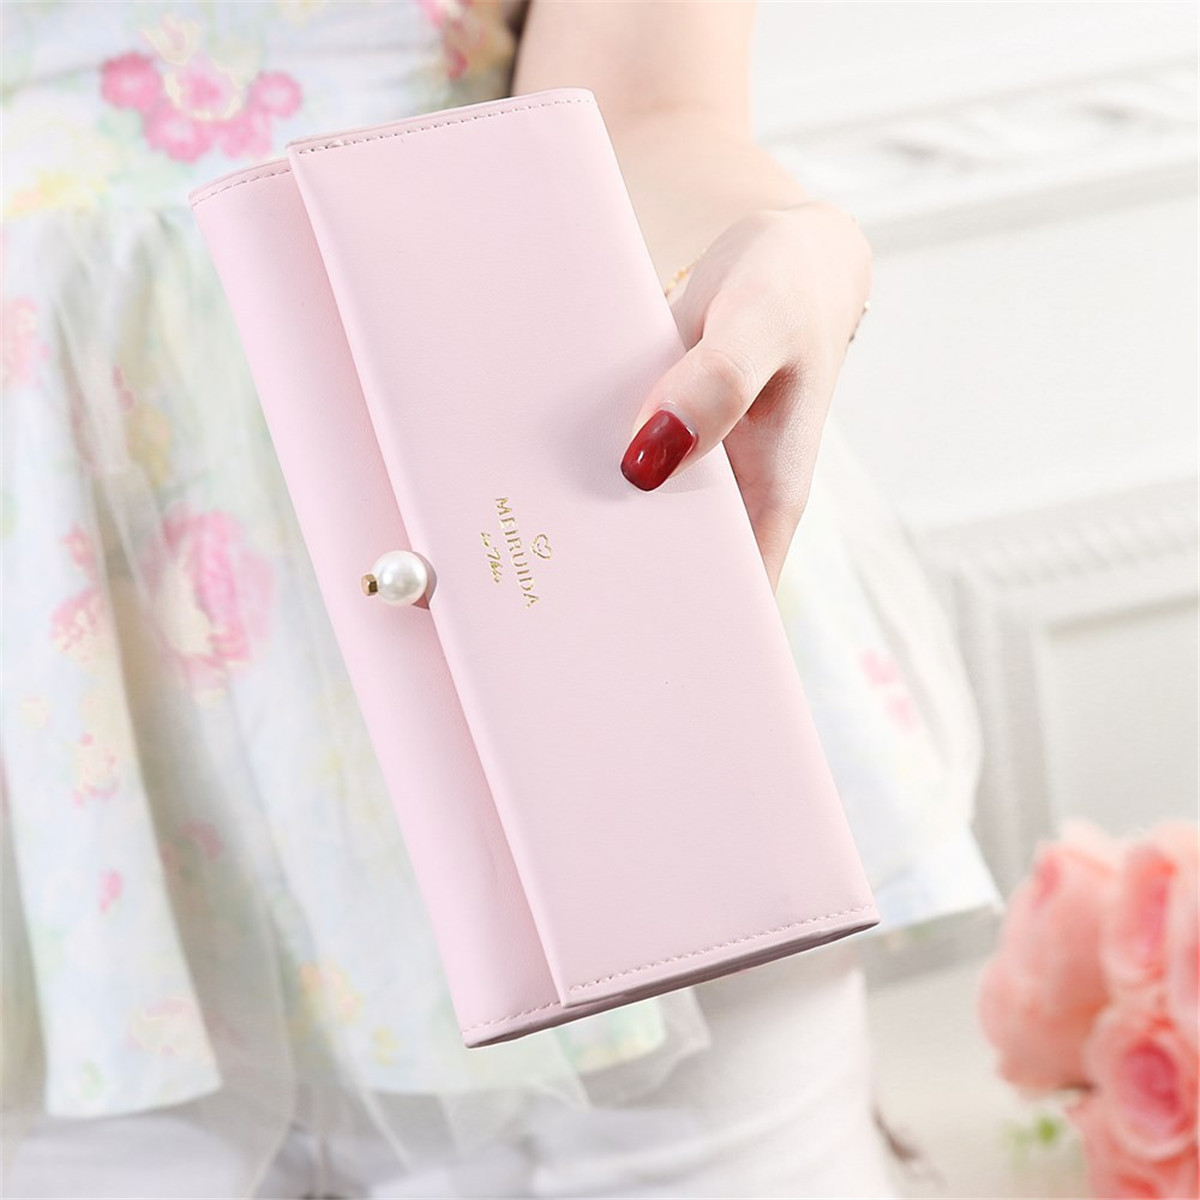 Multifunctional Women PU Leather Pearl Purse Wallet Phone Case Card Holder for Phone under 6 inches